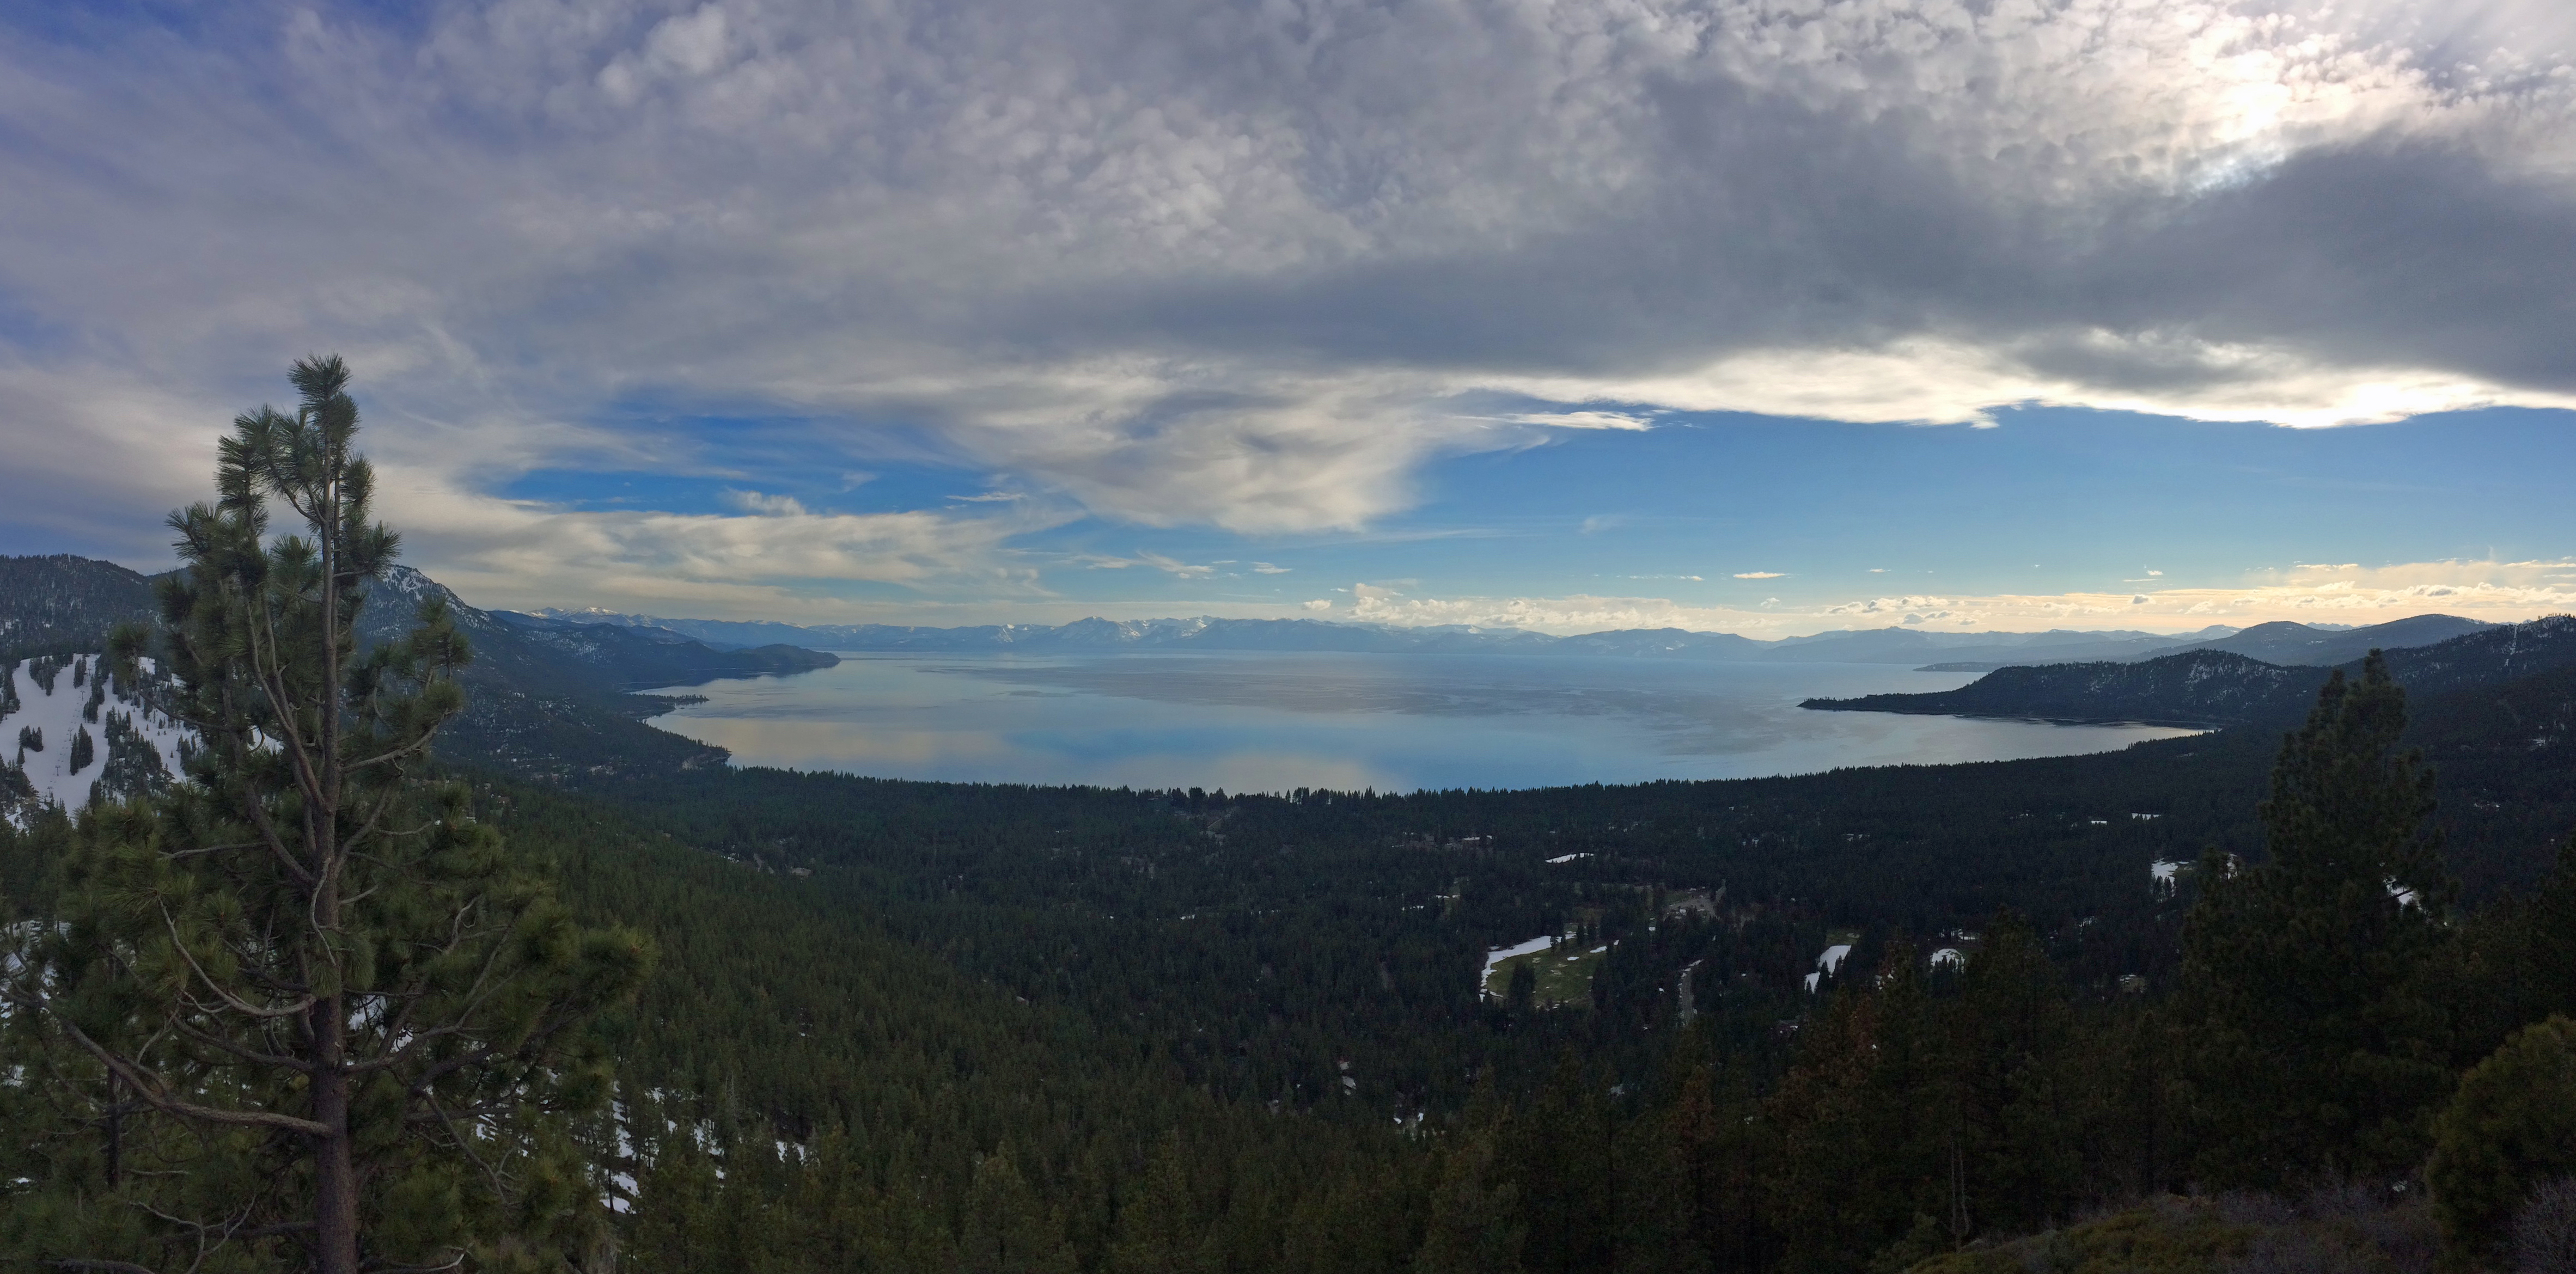 Mount Rose Scenic Overlook Lake Tahoe